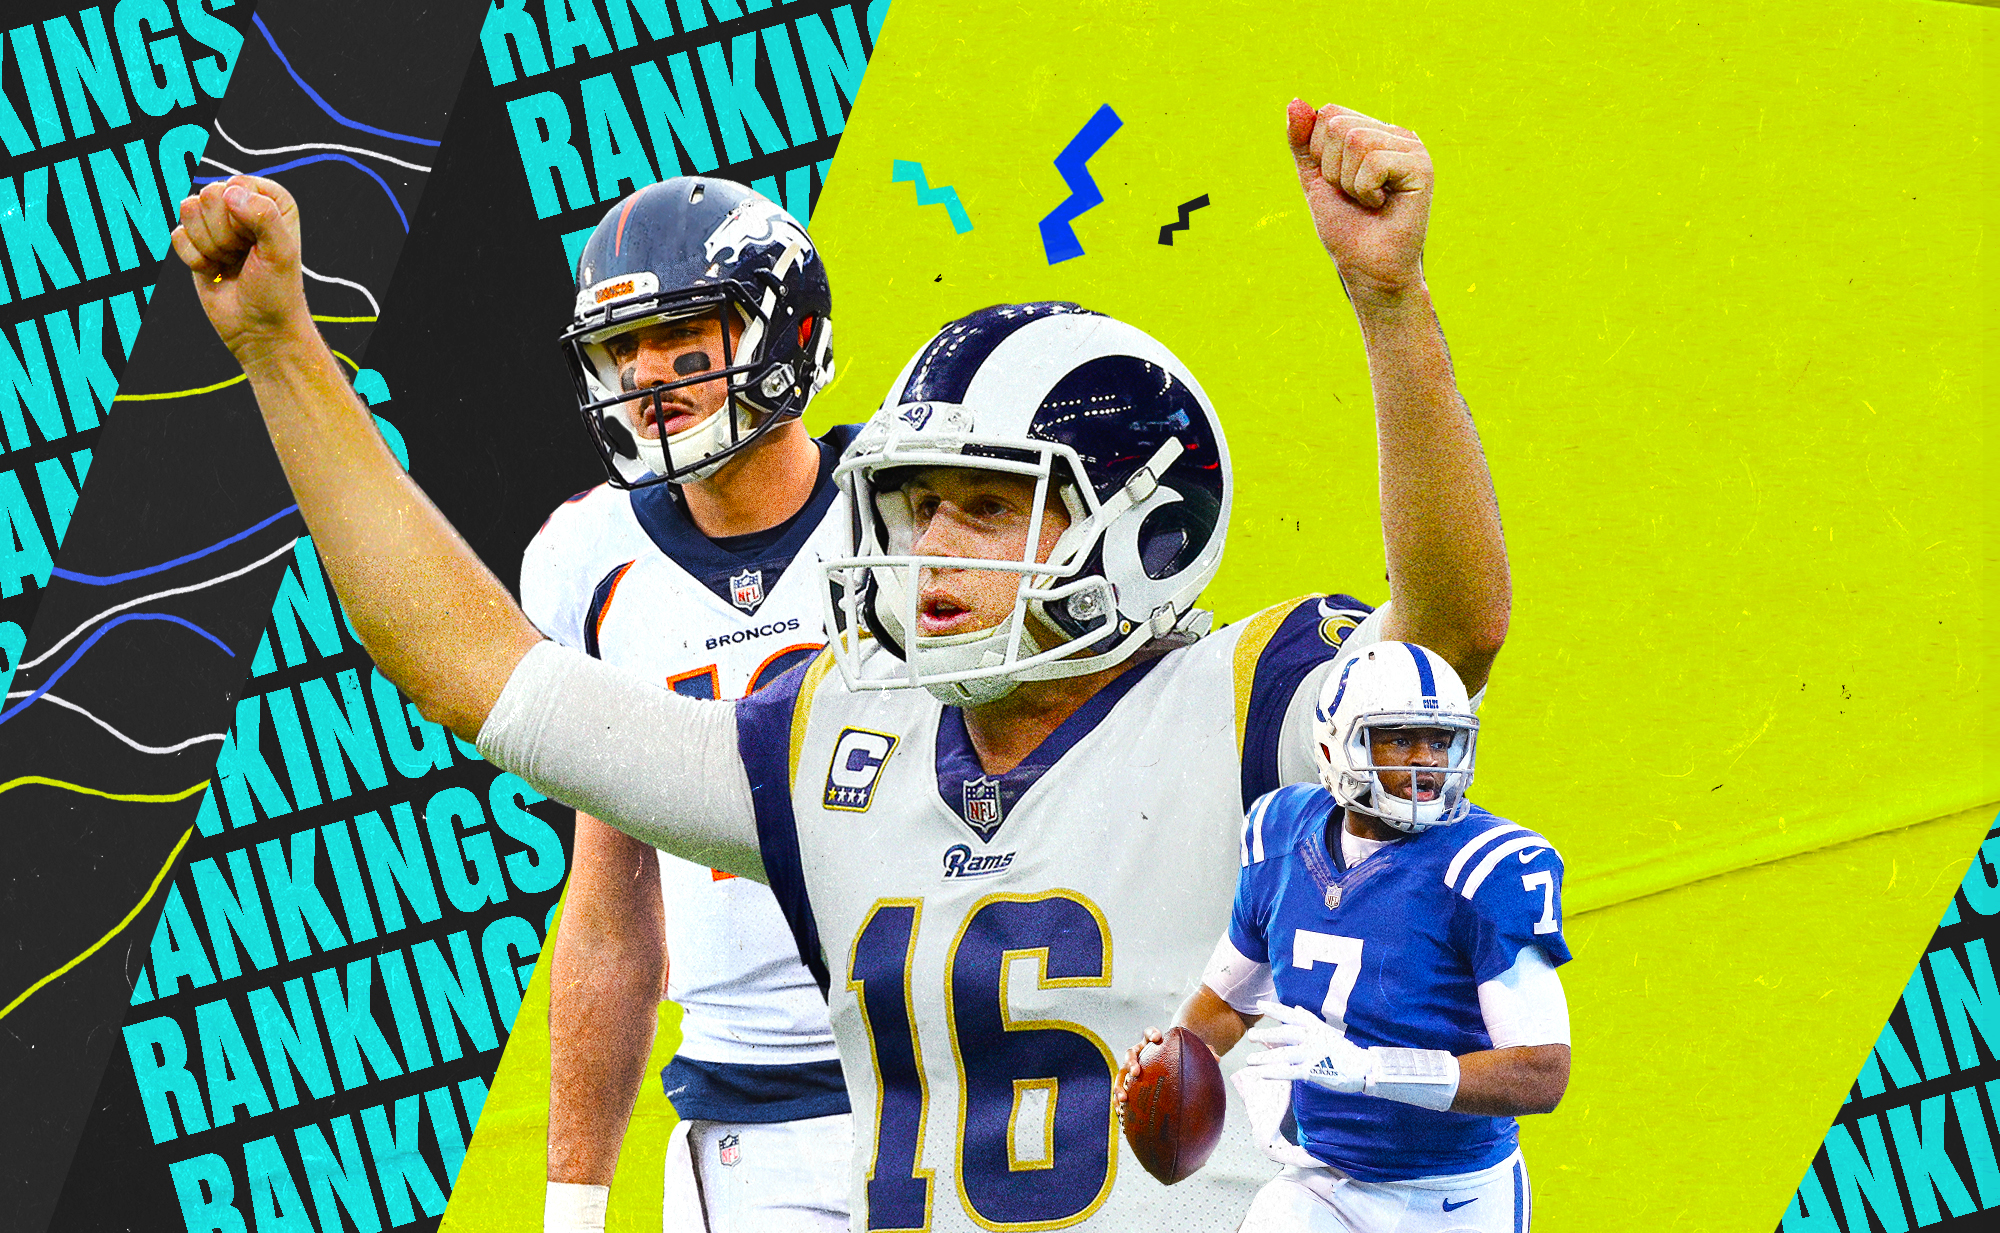 All 15 quarterbacks picked in the 2016 NFL Draft, ranked after 3 seasons